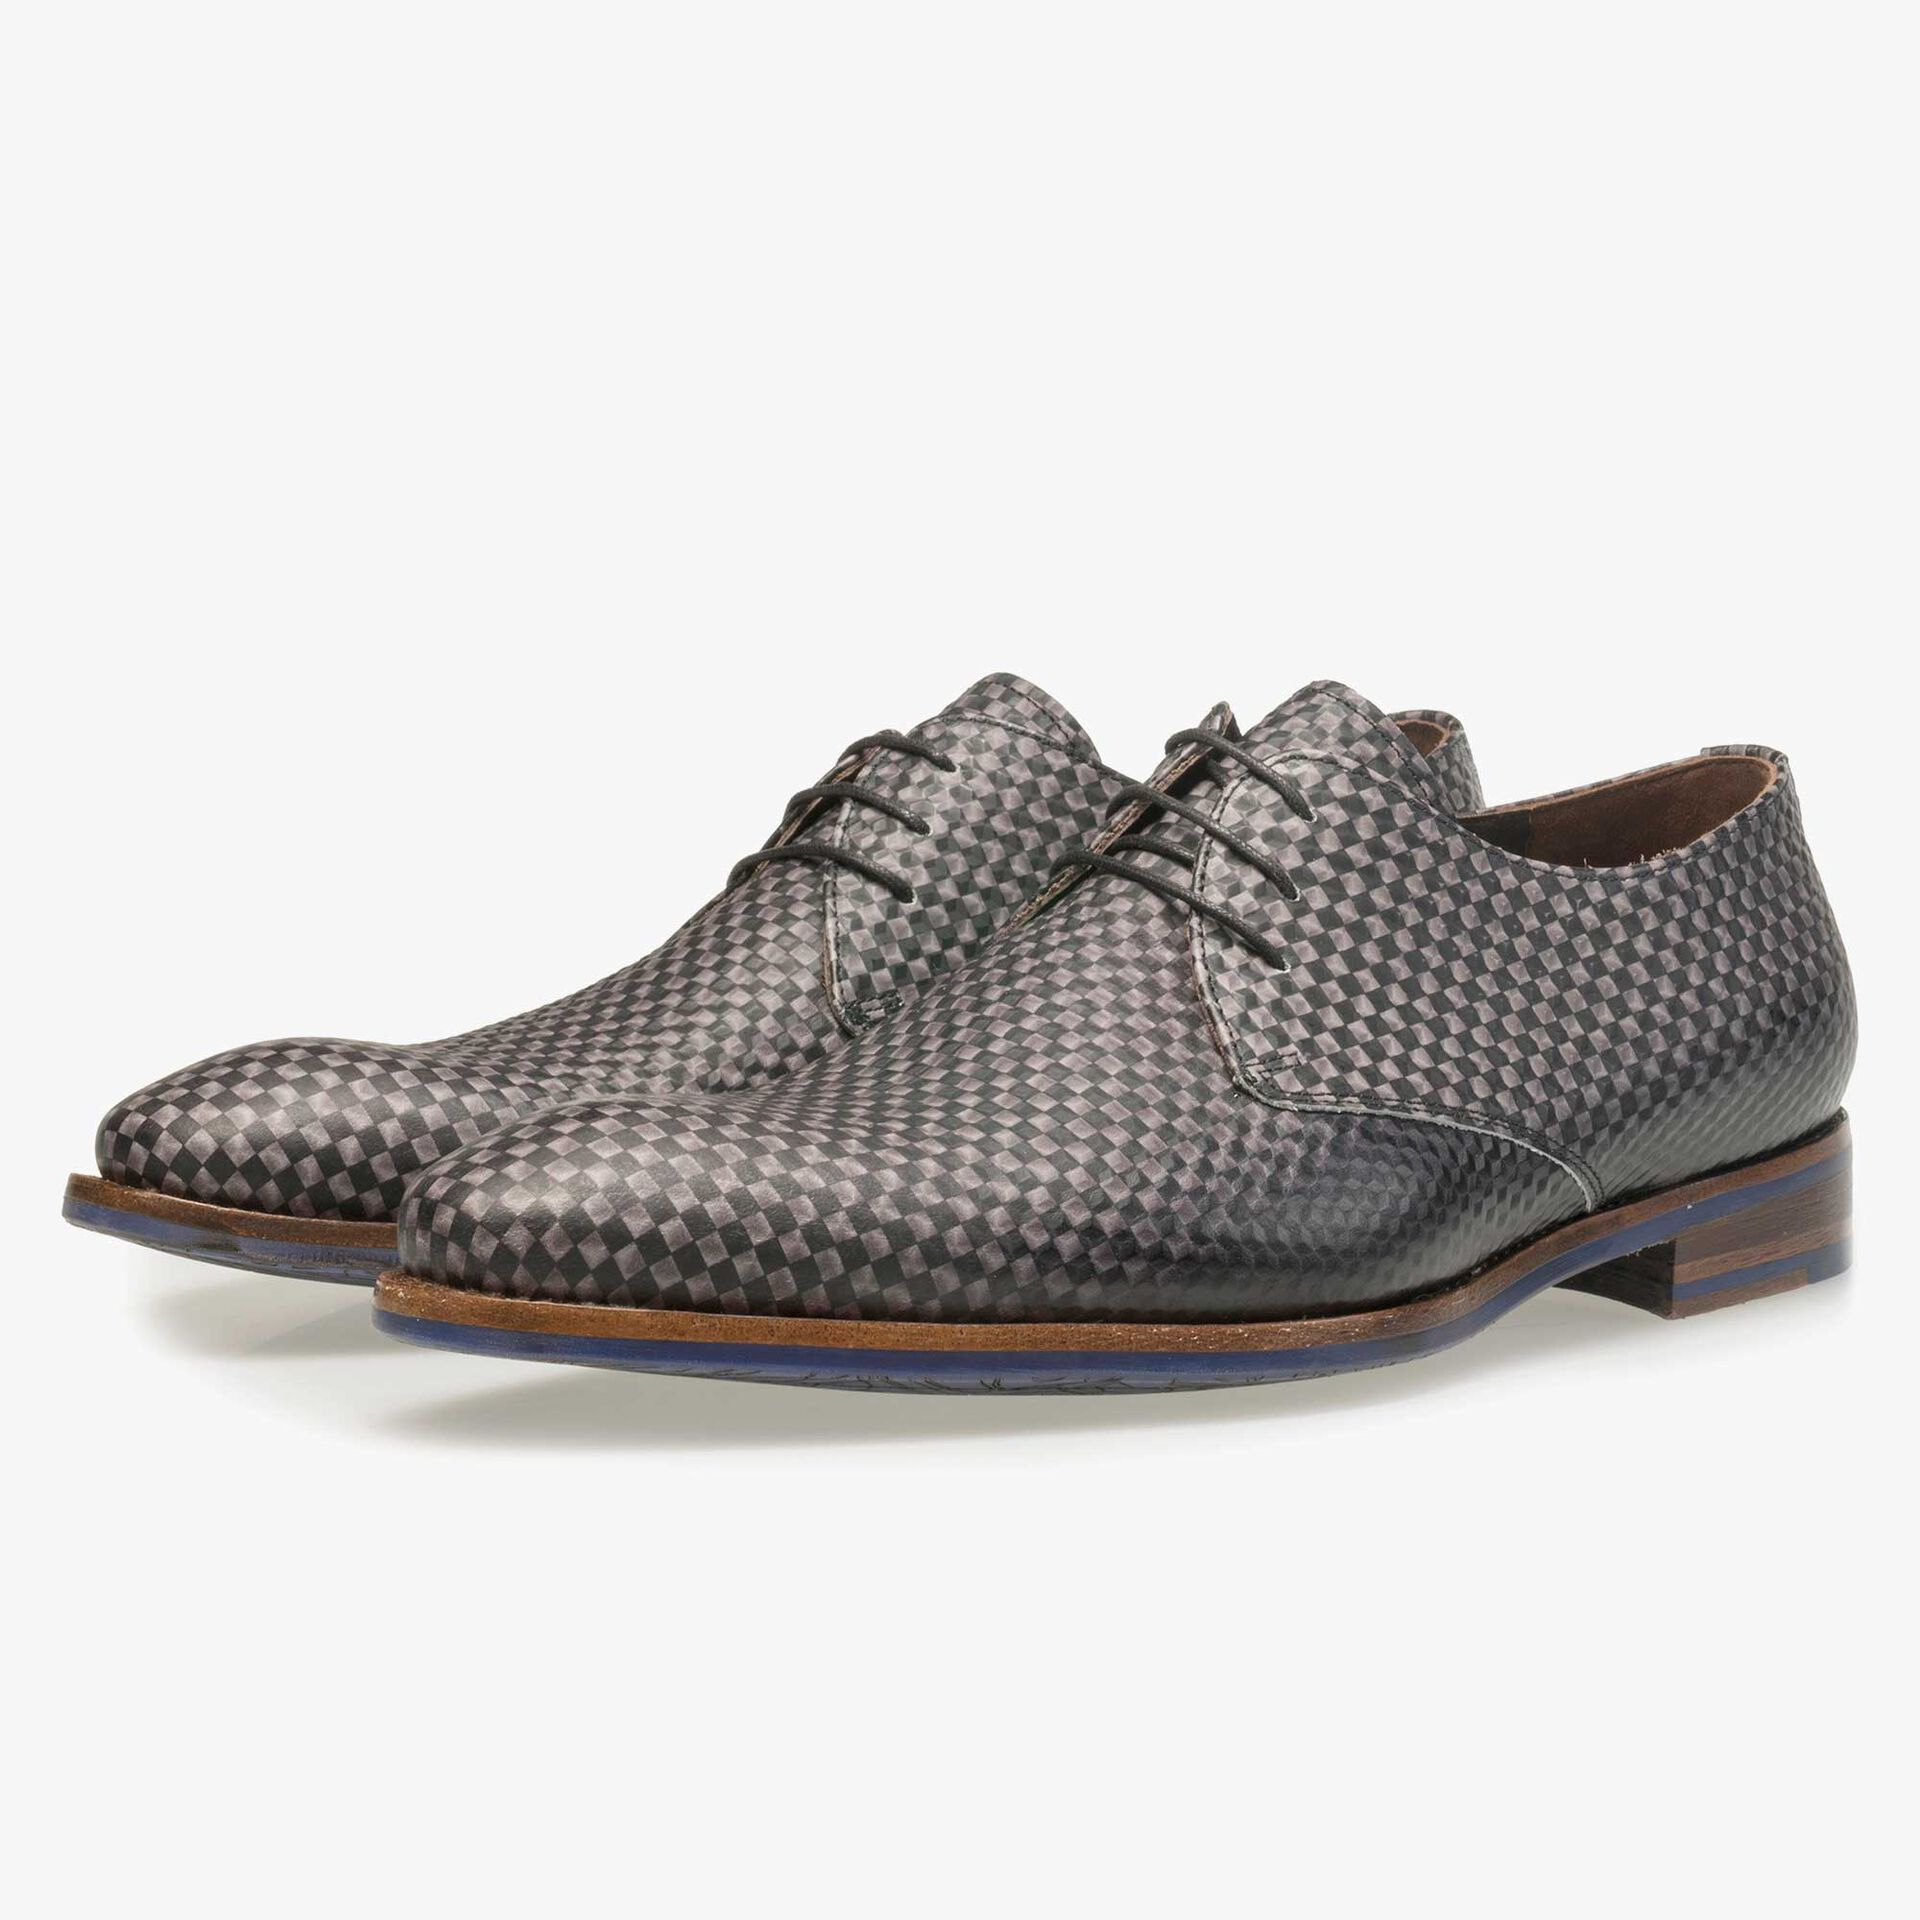 Floris van Bommel men's dark grey leather lace shoe